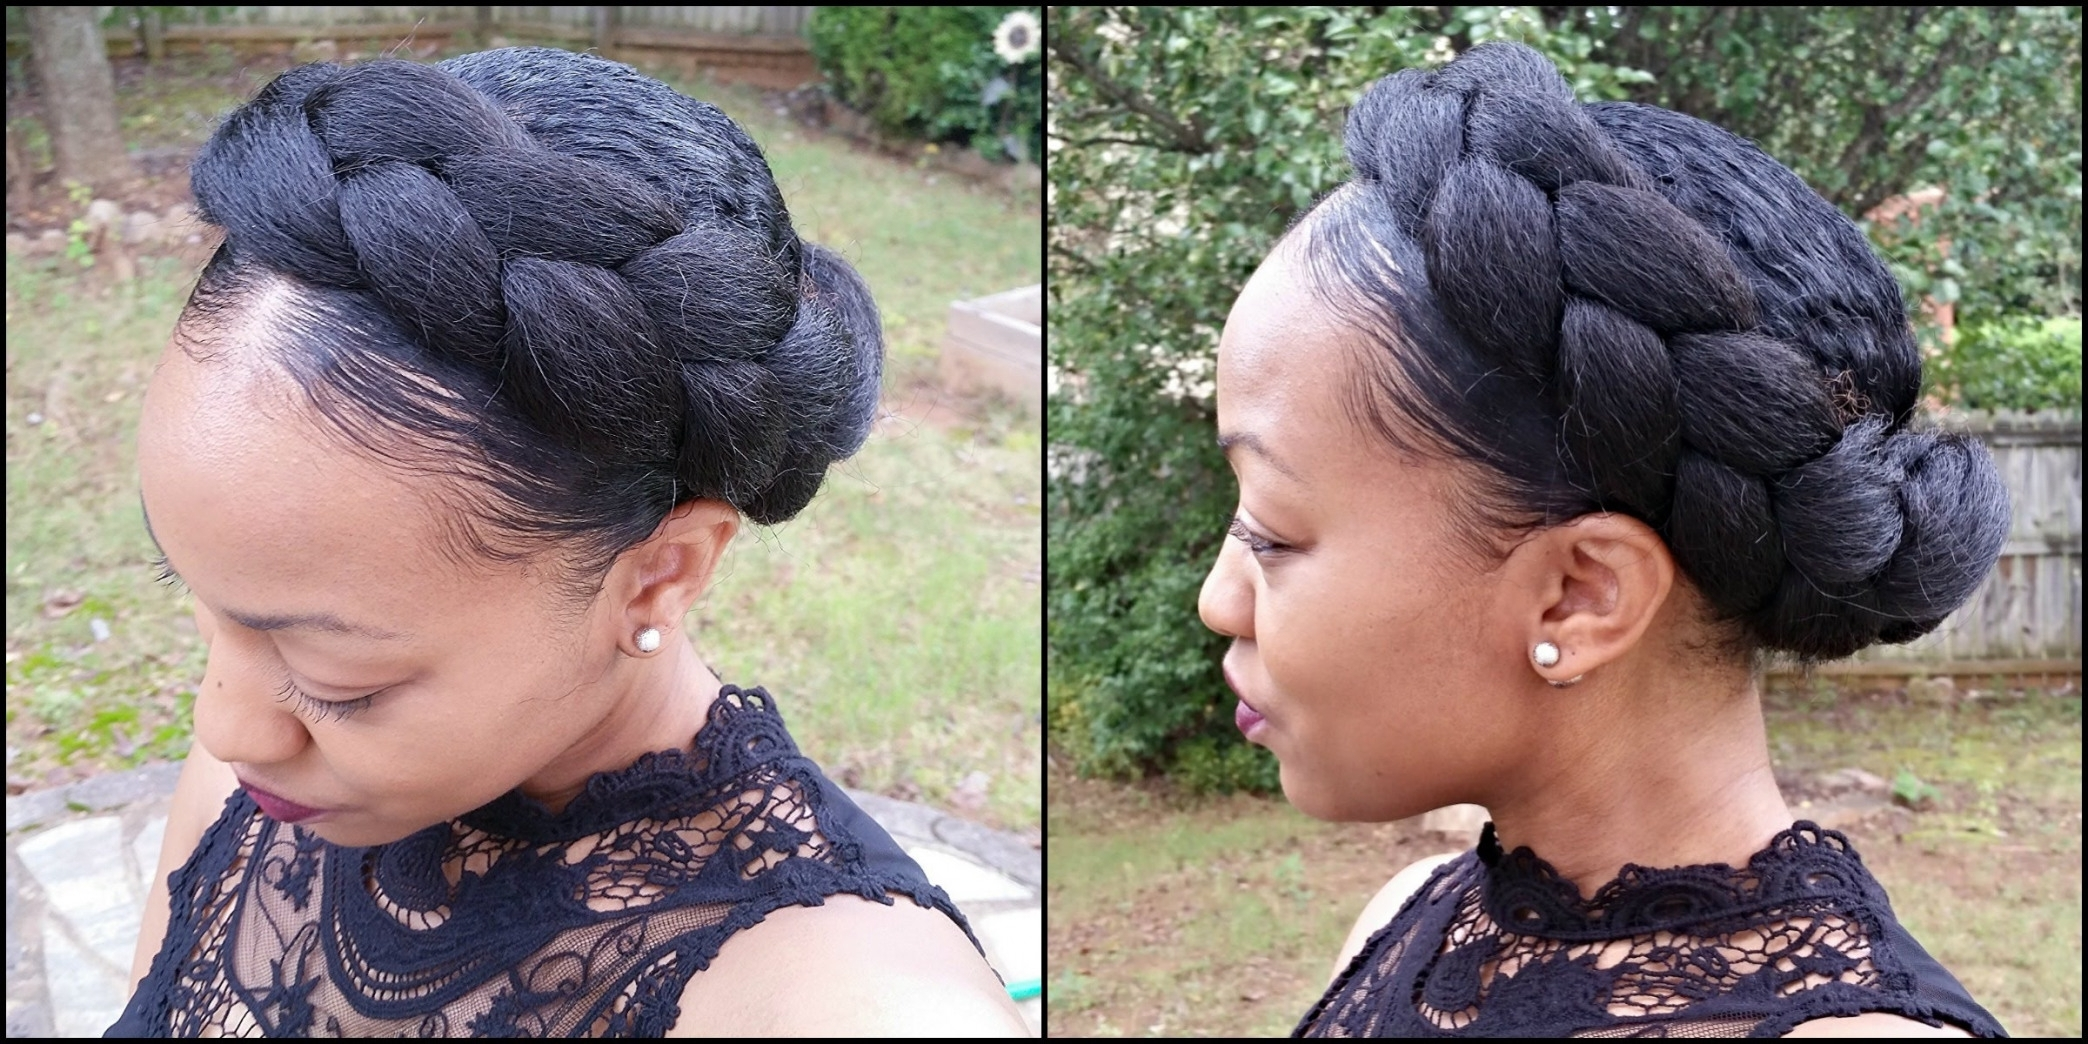 Most Recently Released Halo Braid Hairstyles Regarding Halo Braid Hairstyles Black – The Newest Hairstyles (View 12 of 15)